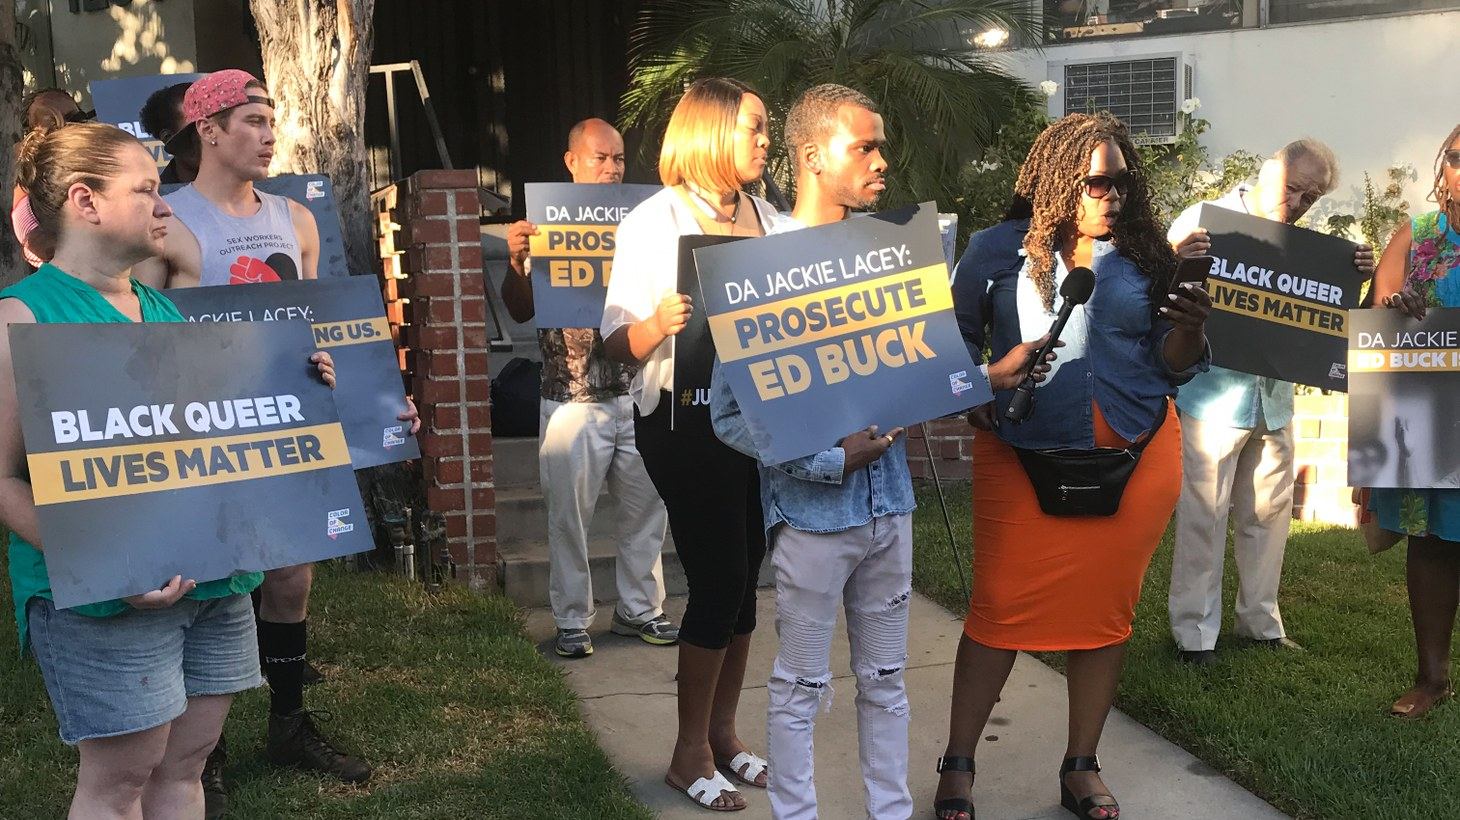 A recent protest outside the apartment of Ed Buck, an LGBTQ activist and Democratic party donor.